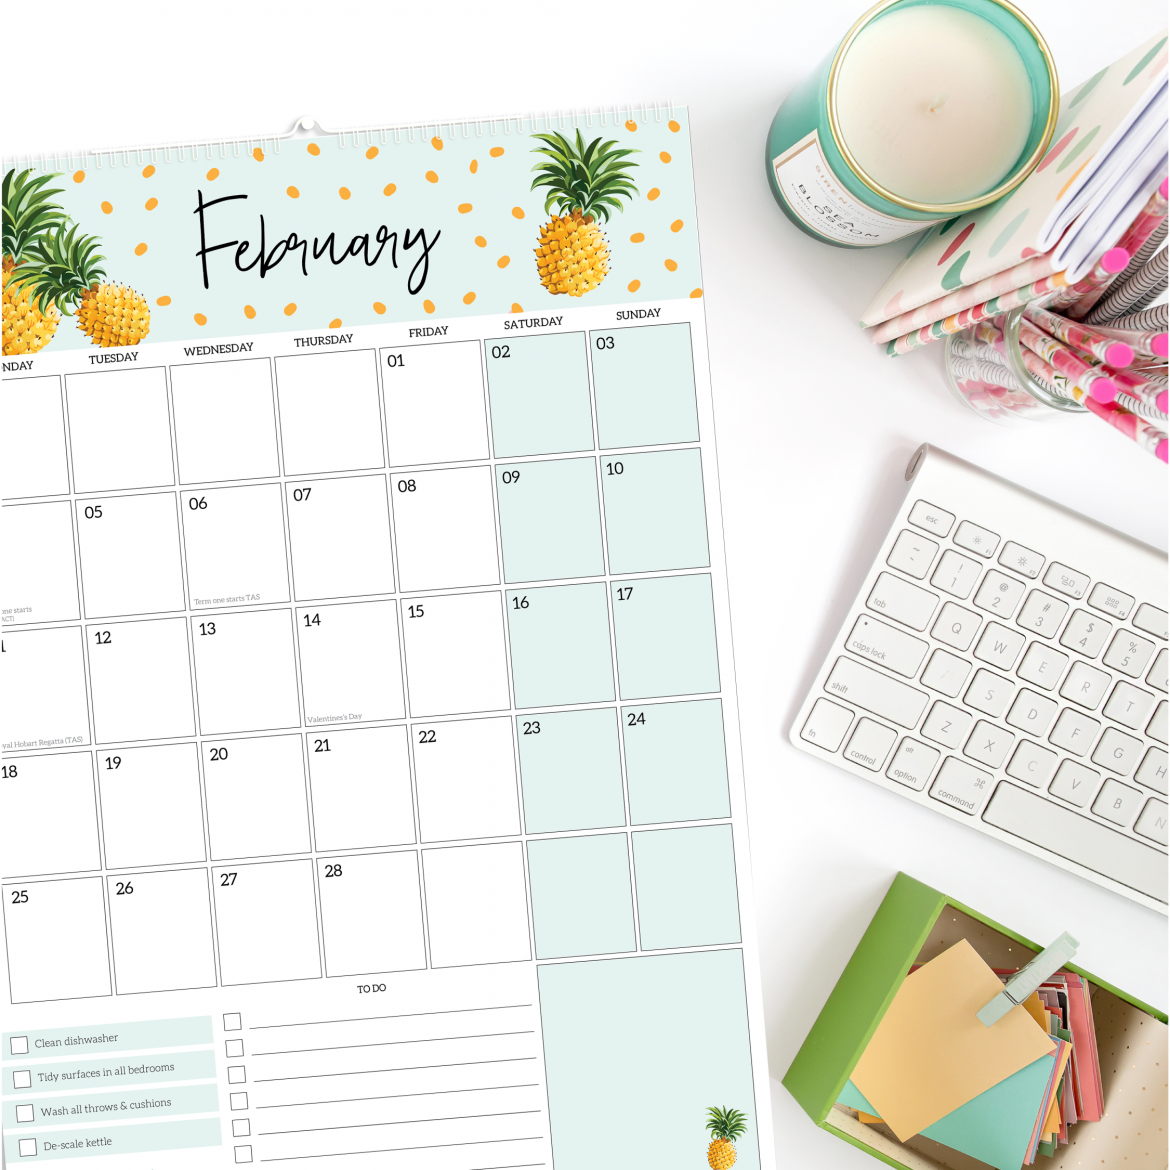 https://theorganisedhousewife.com.au/shop/product/the-organised-housewife-2019-calendar/